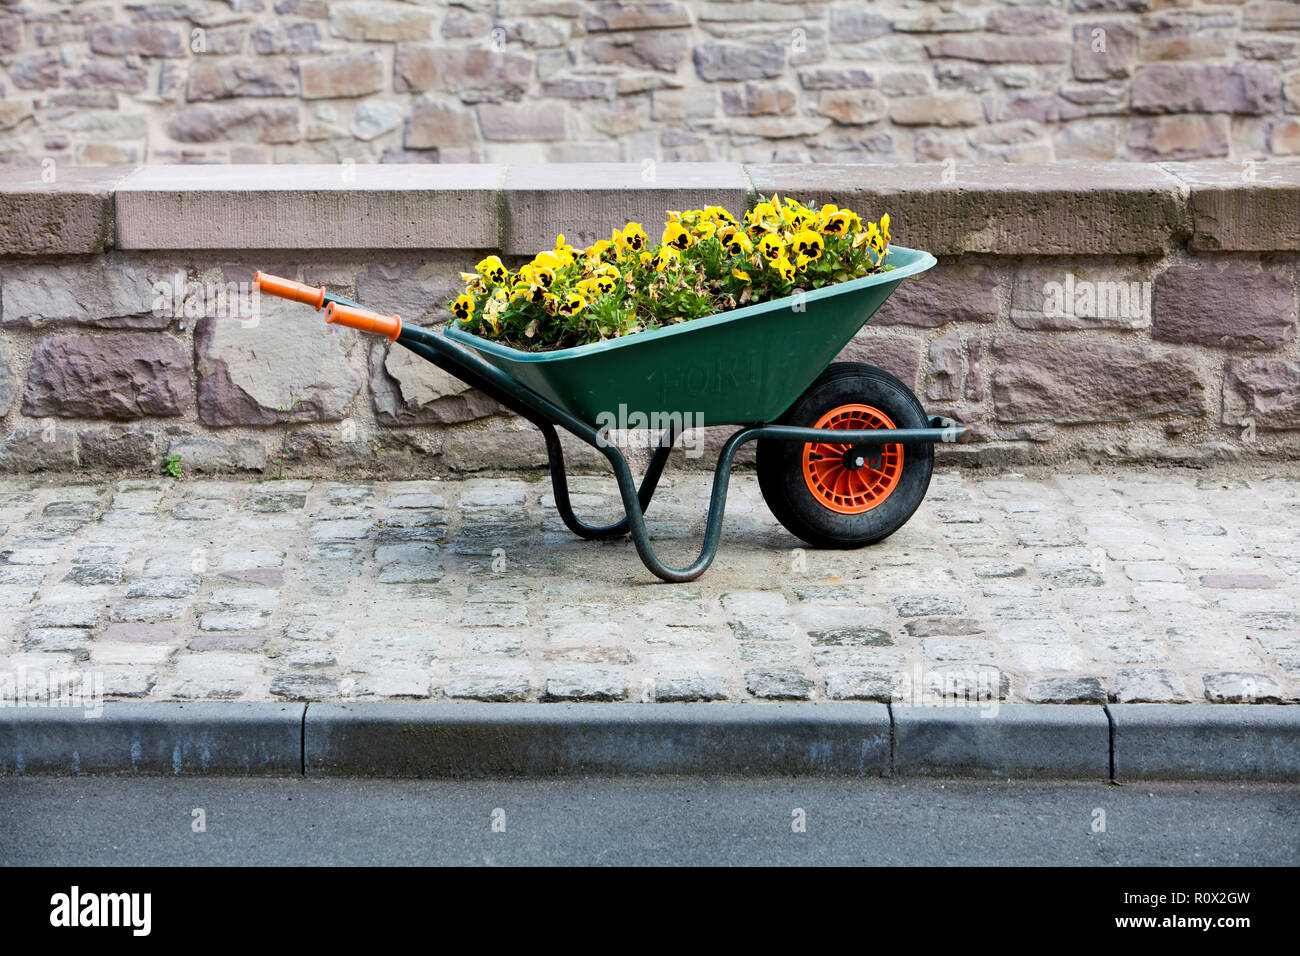 Flowers in a wheelbarrow, Bad Karlshafen,  Weser Uplands, Hesse, Germany, Europe - Stock Image